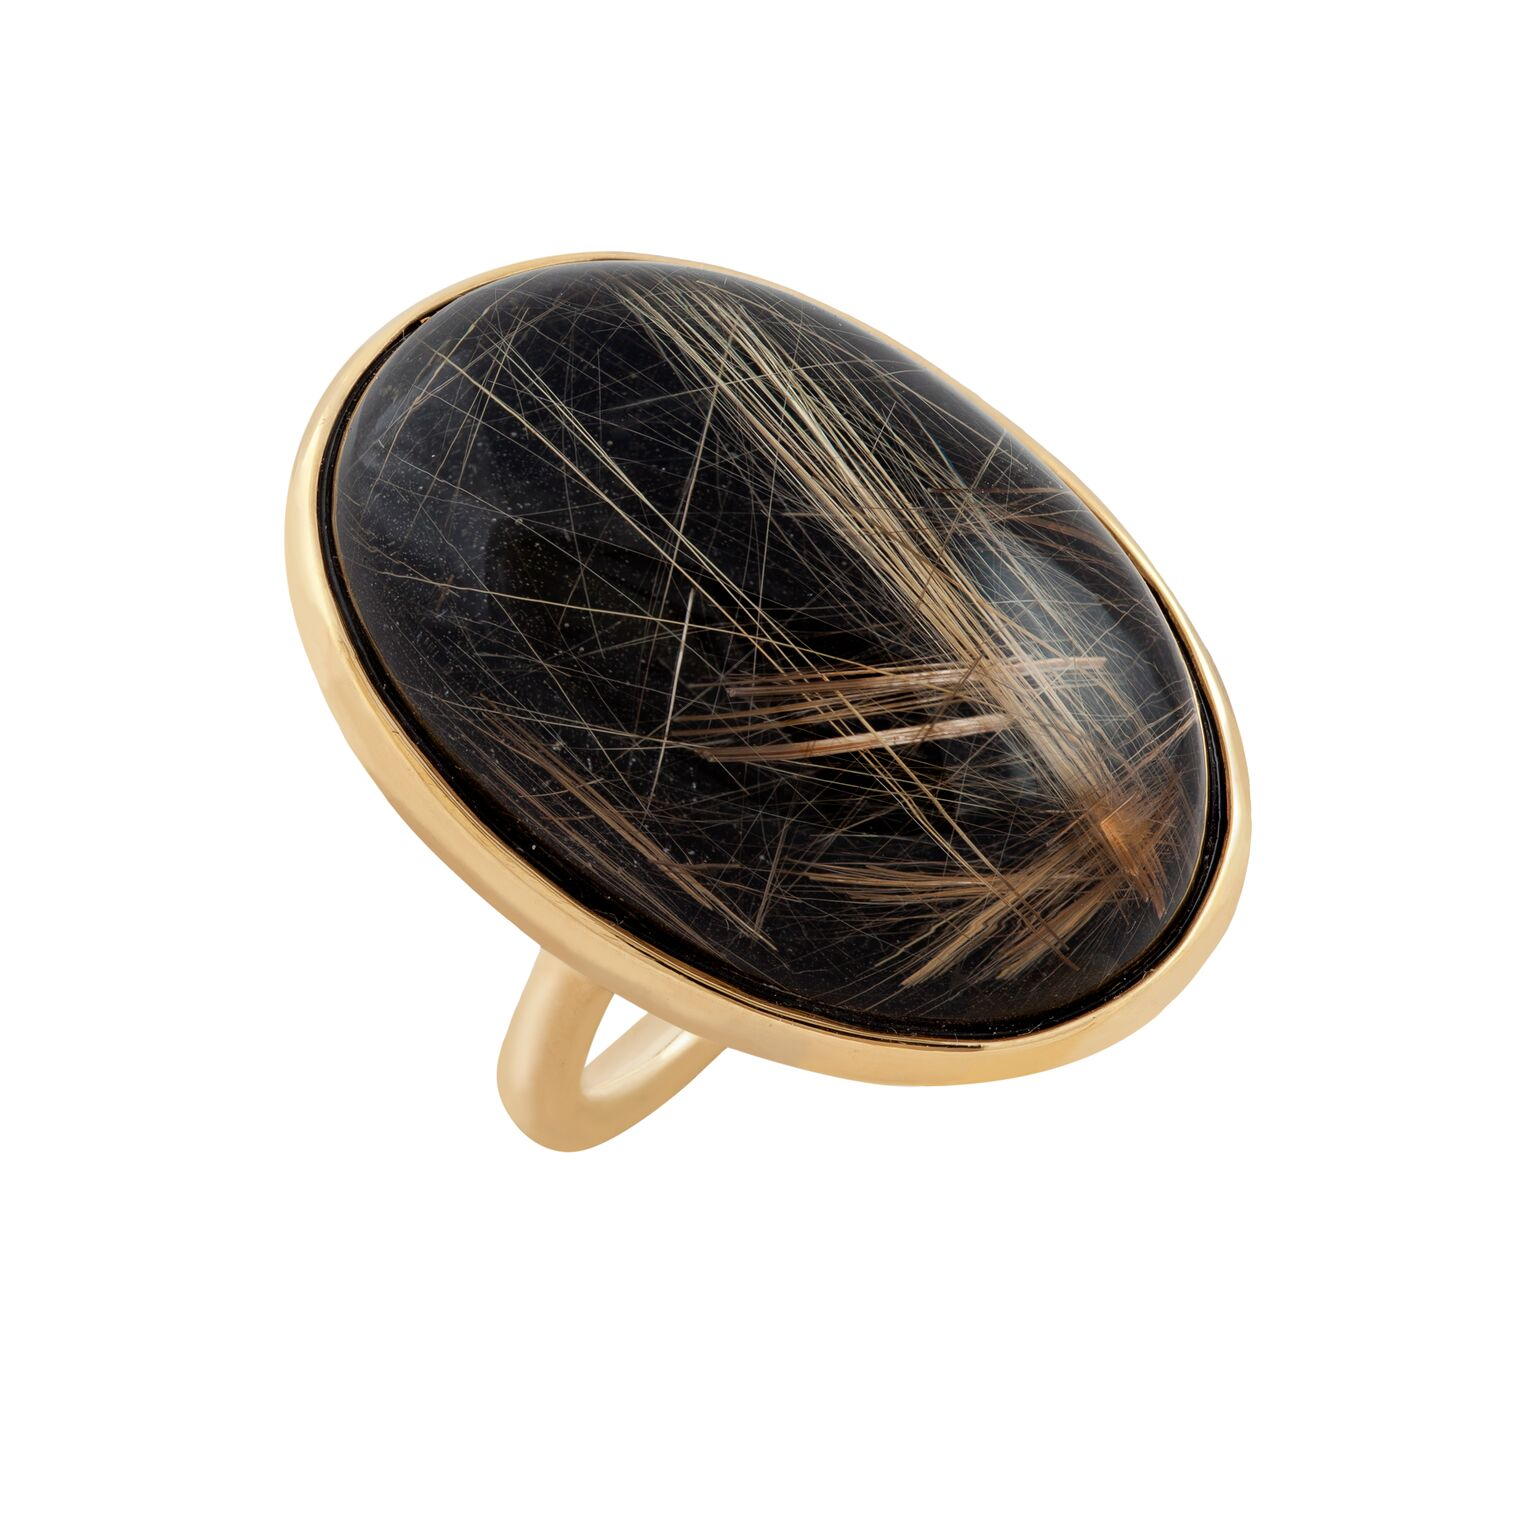 Rutilated quartz cabuchon, backed with black jade, set in 18k yellow gold ring